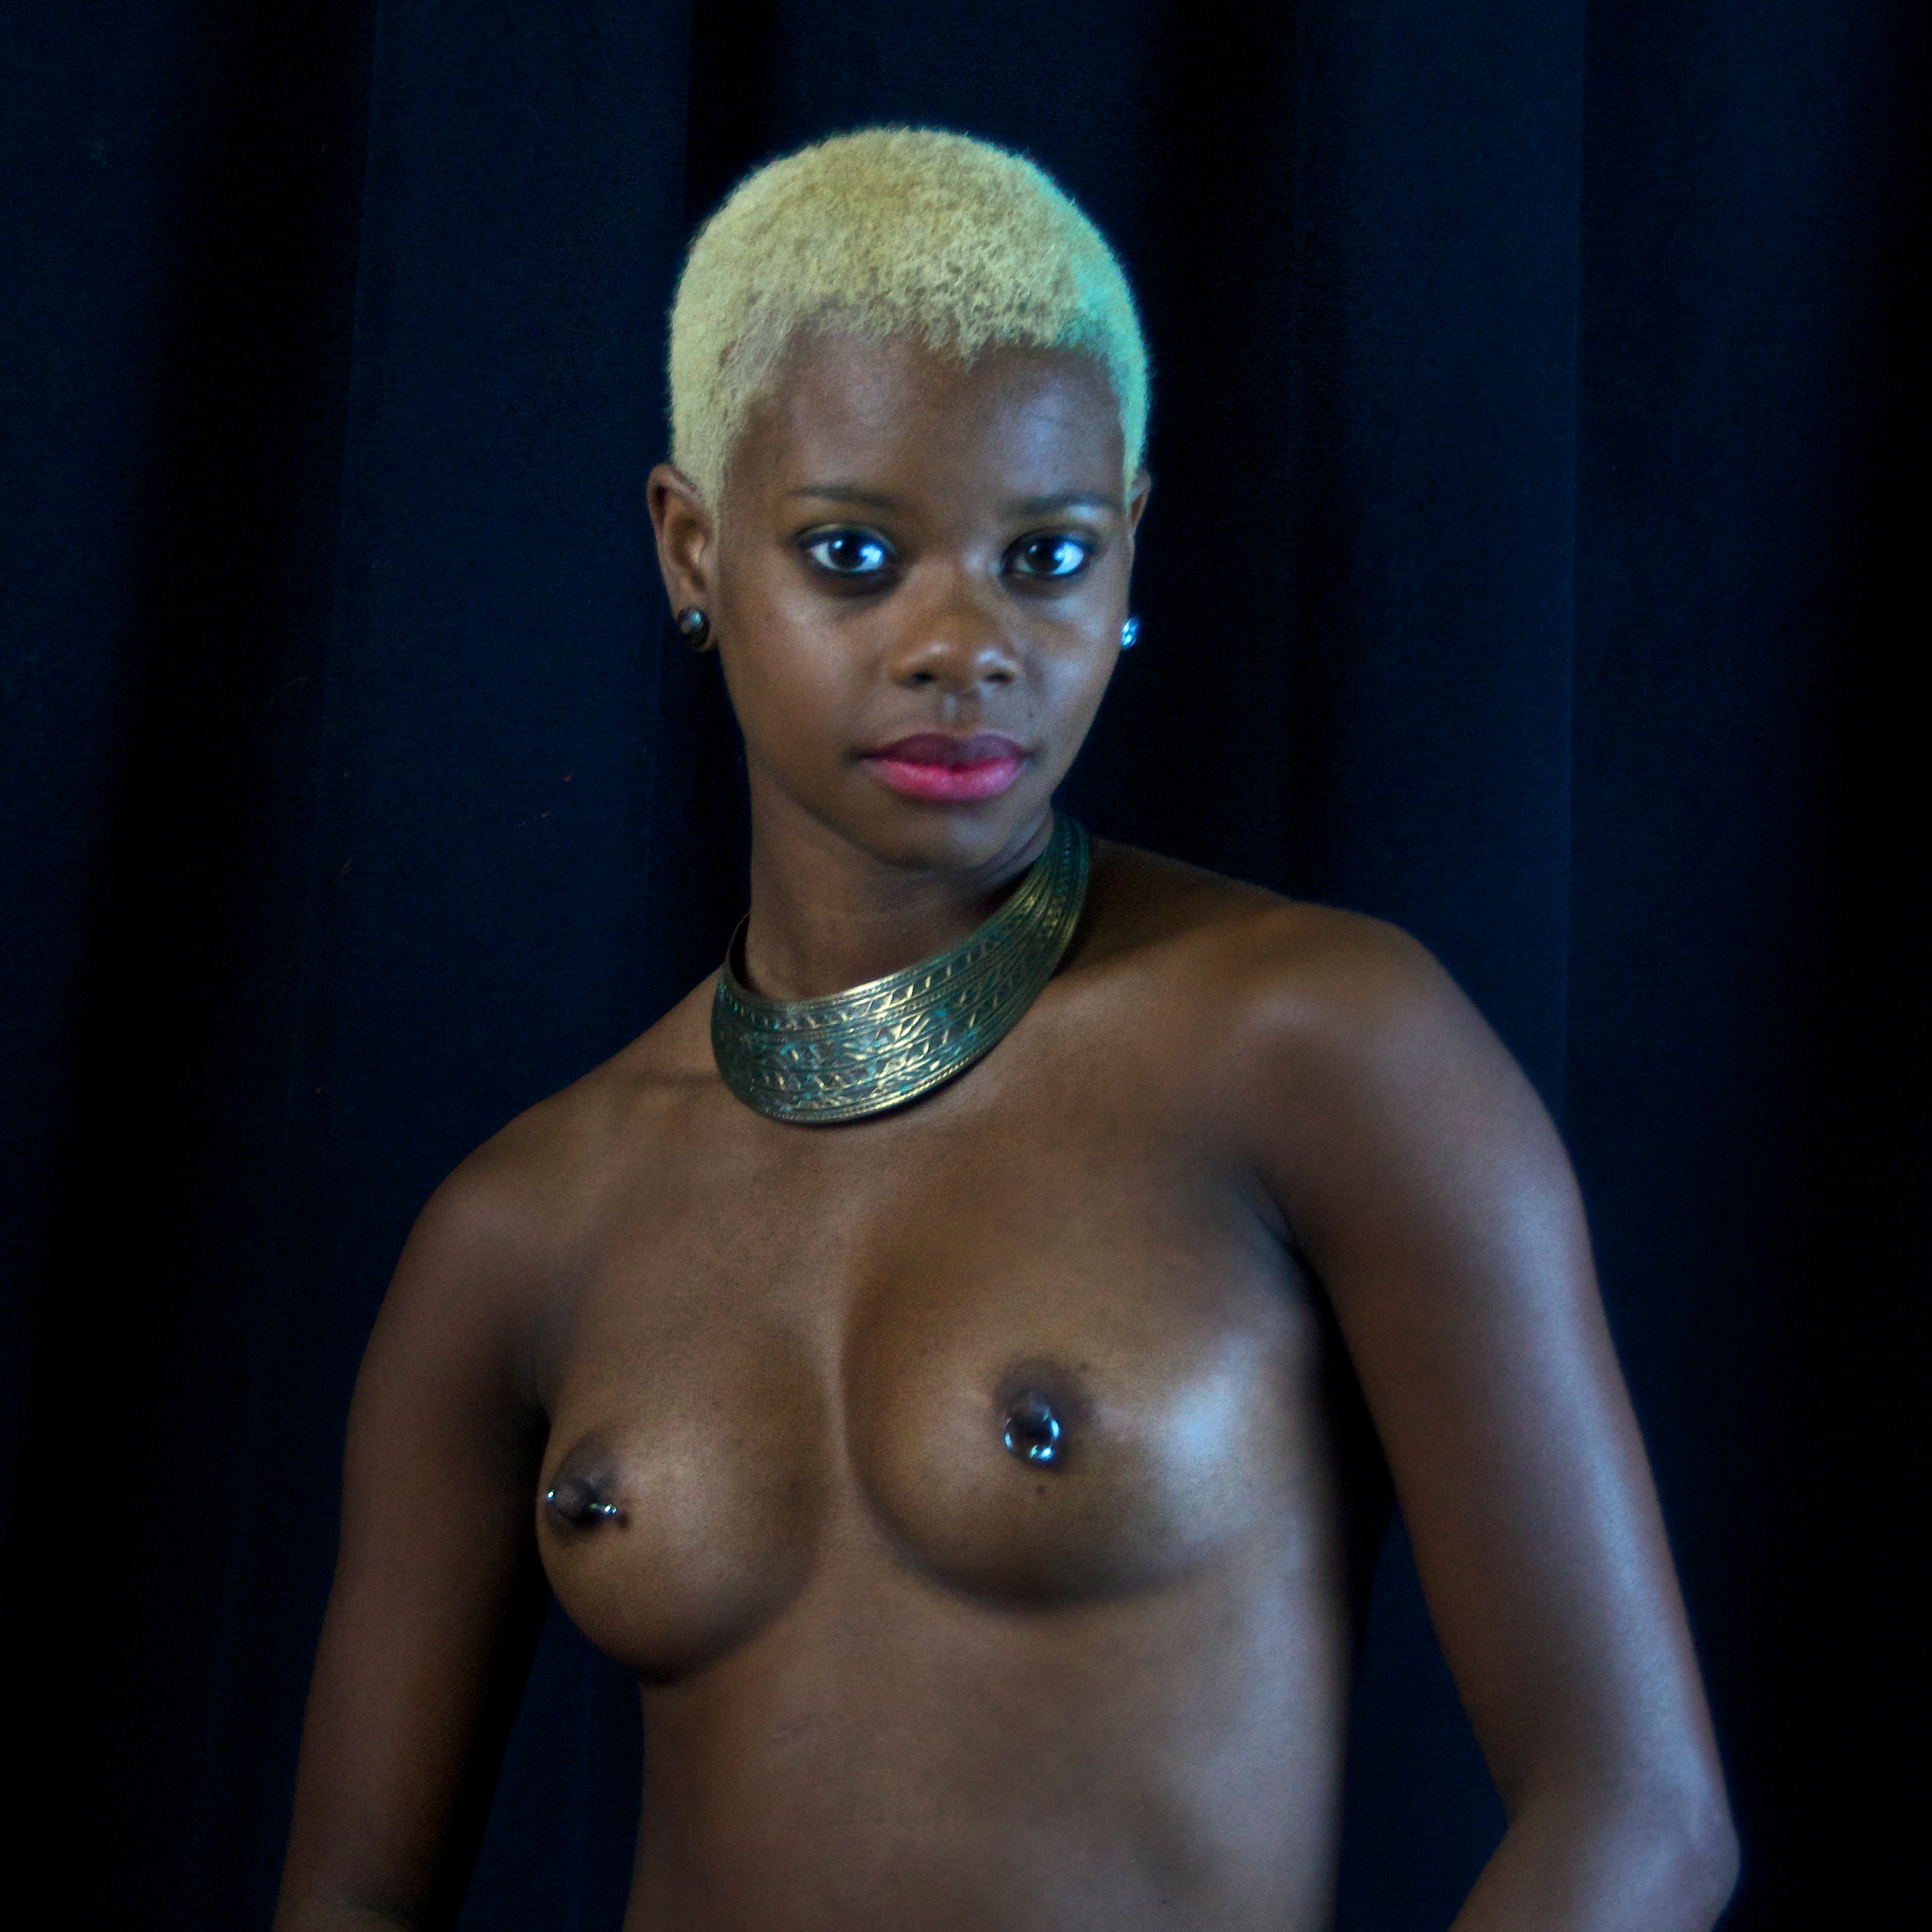 African-American woman with pierced nipples